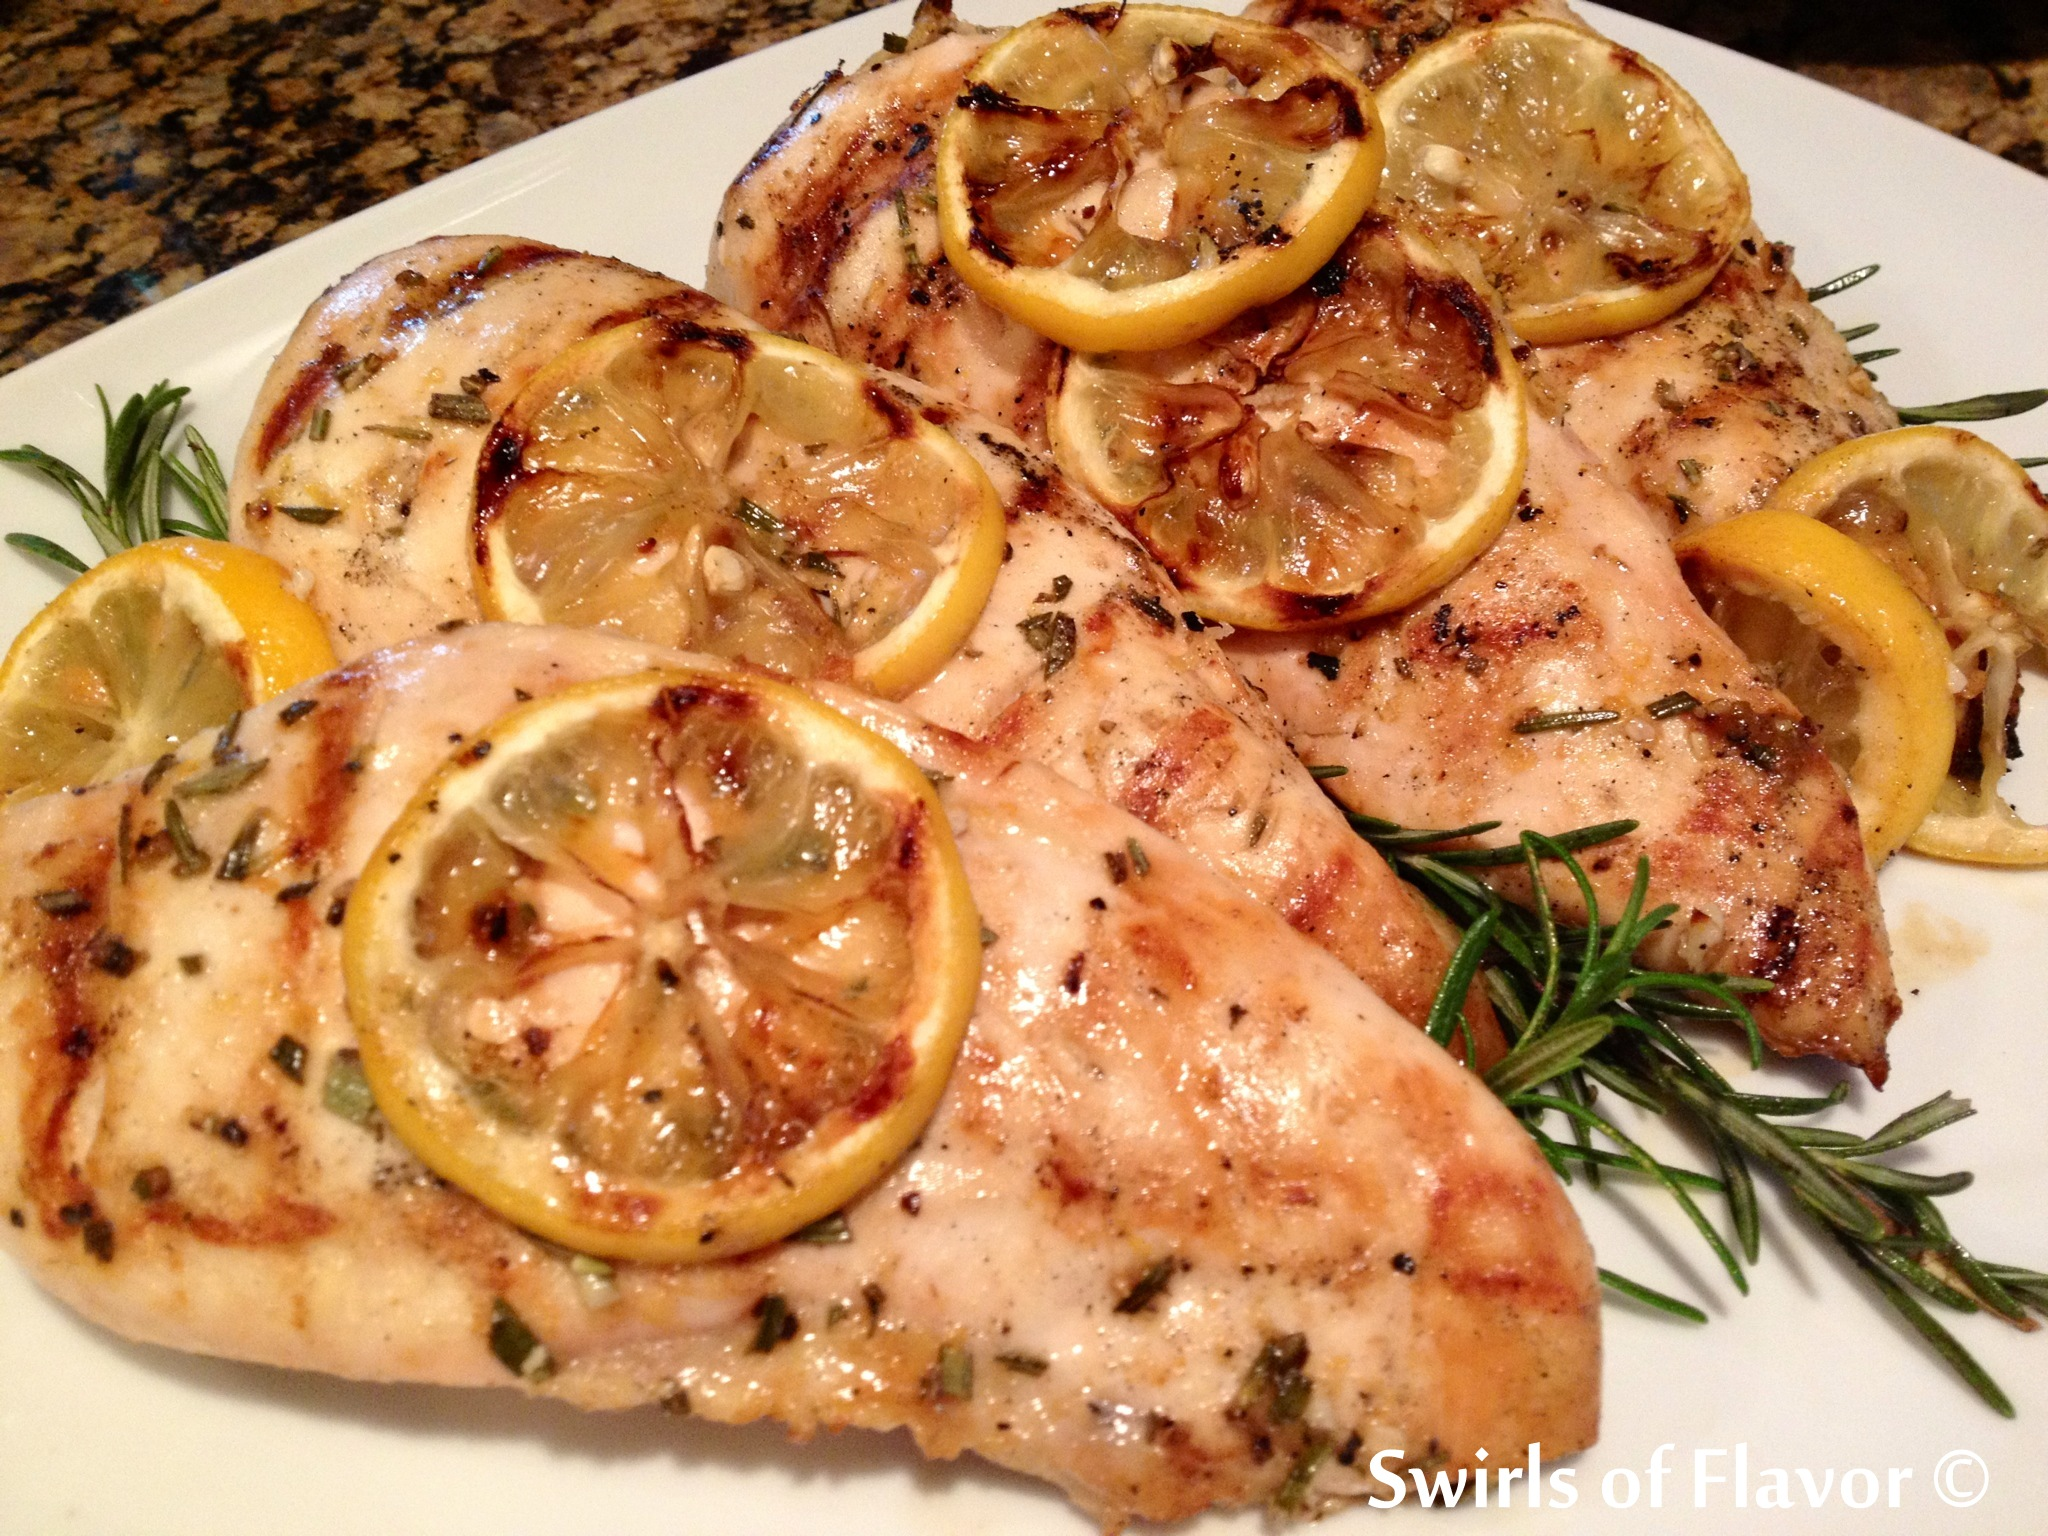 ... rosemary rosemary grilled chicken roast chicken with rosemary rosemary